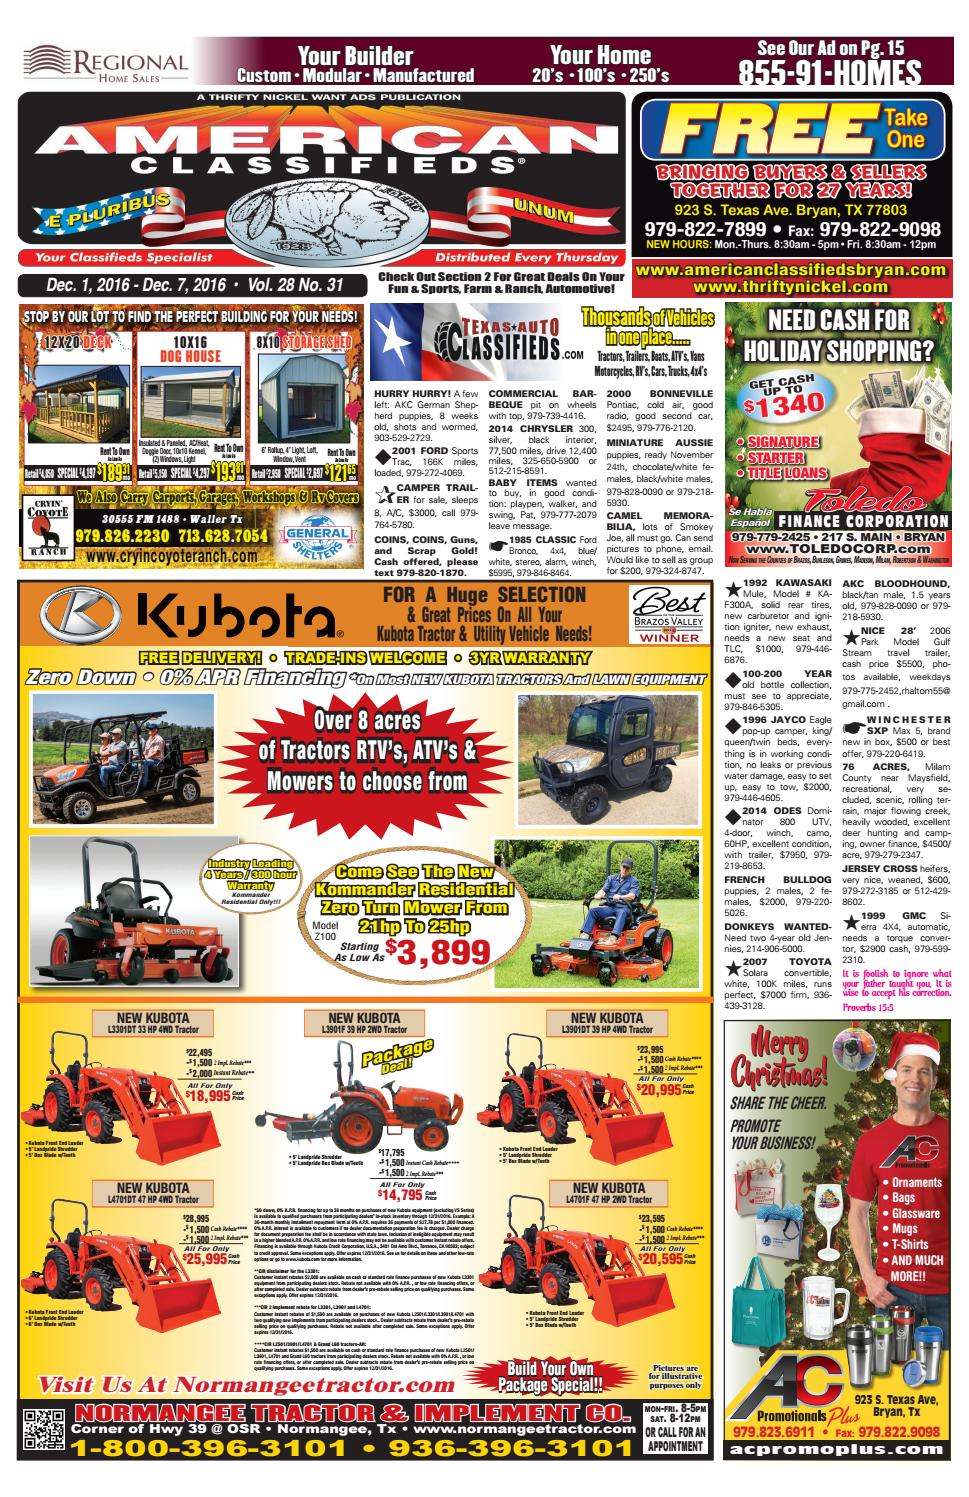 American Classifieds Dec  1st Edition Bryan/College Station